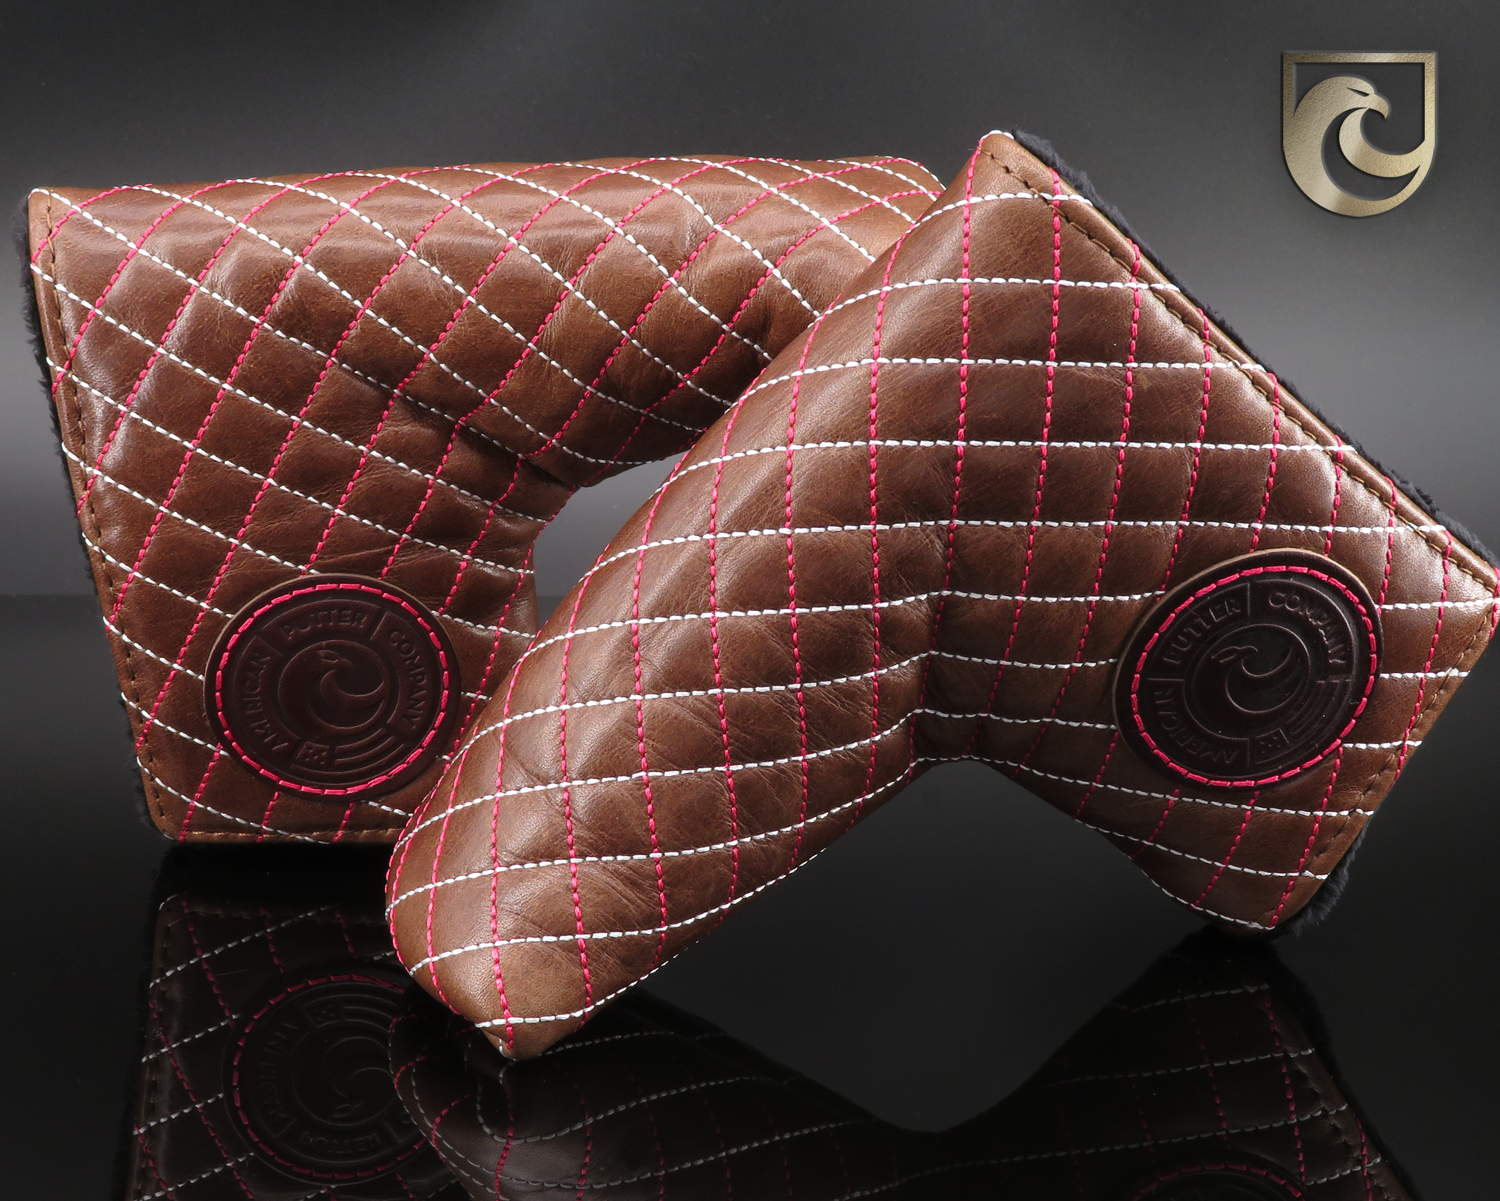 American Putter Company Savannah Headcover: Italian Brown Leather with Ruby (Vibrant Pink) & White Cross Stitch!